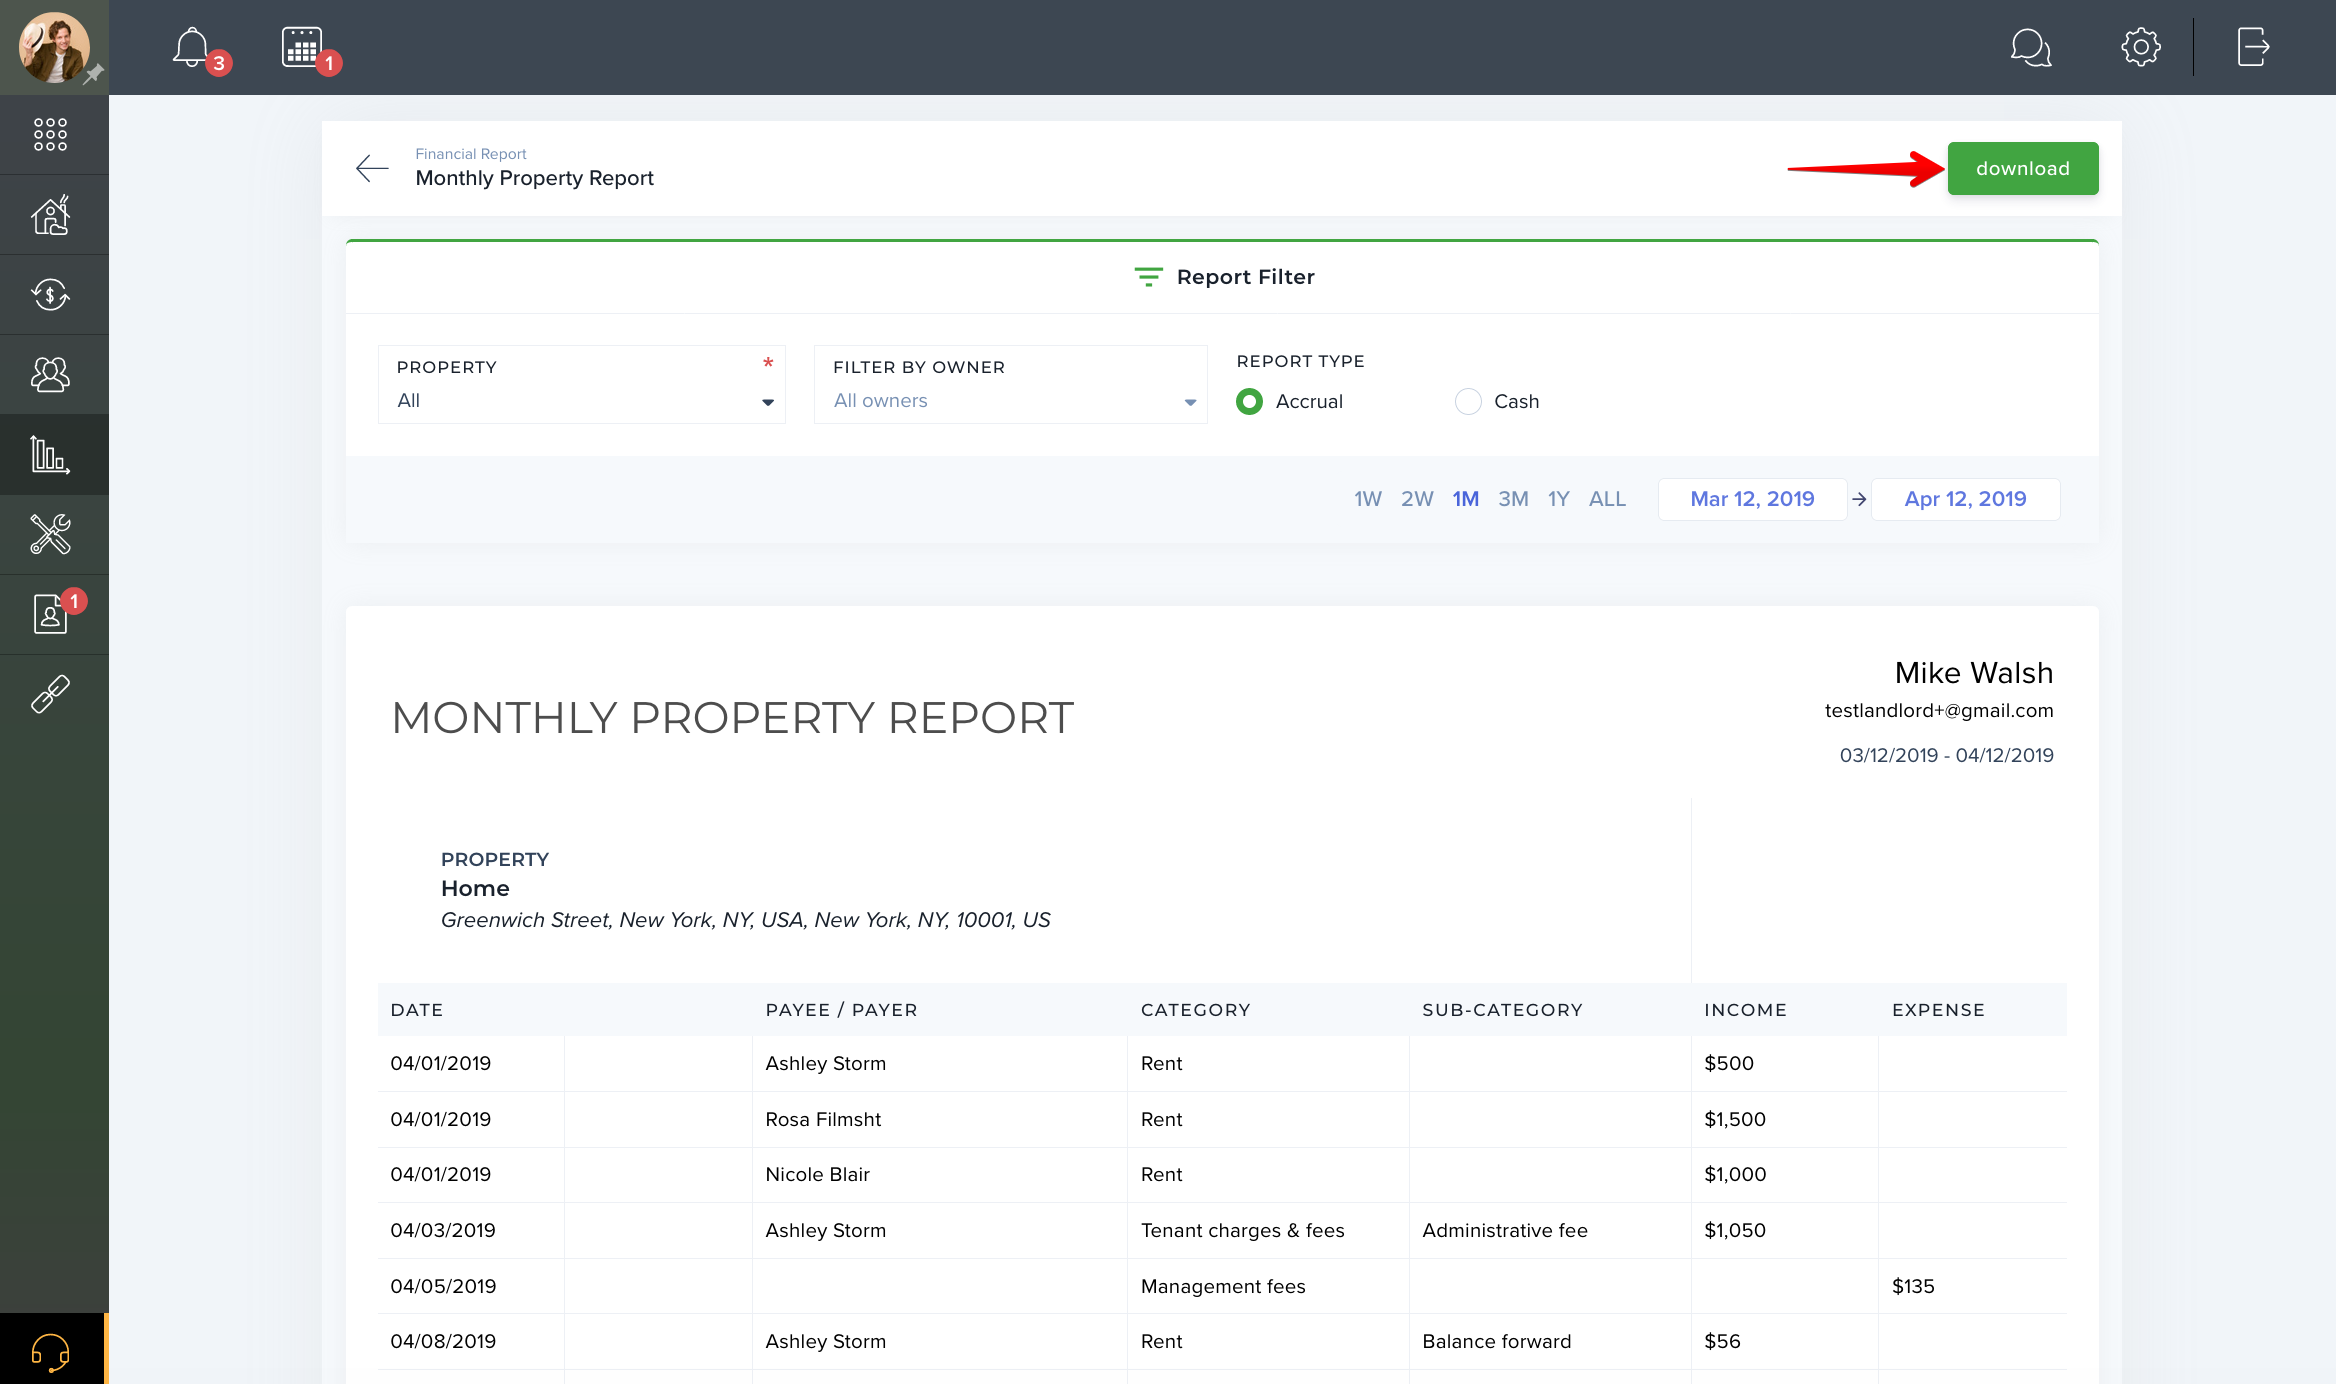 Monthly Property report